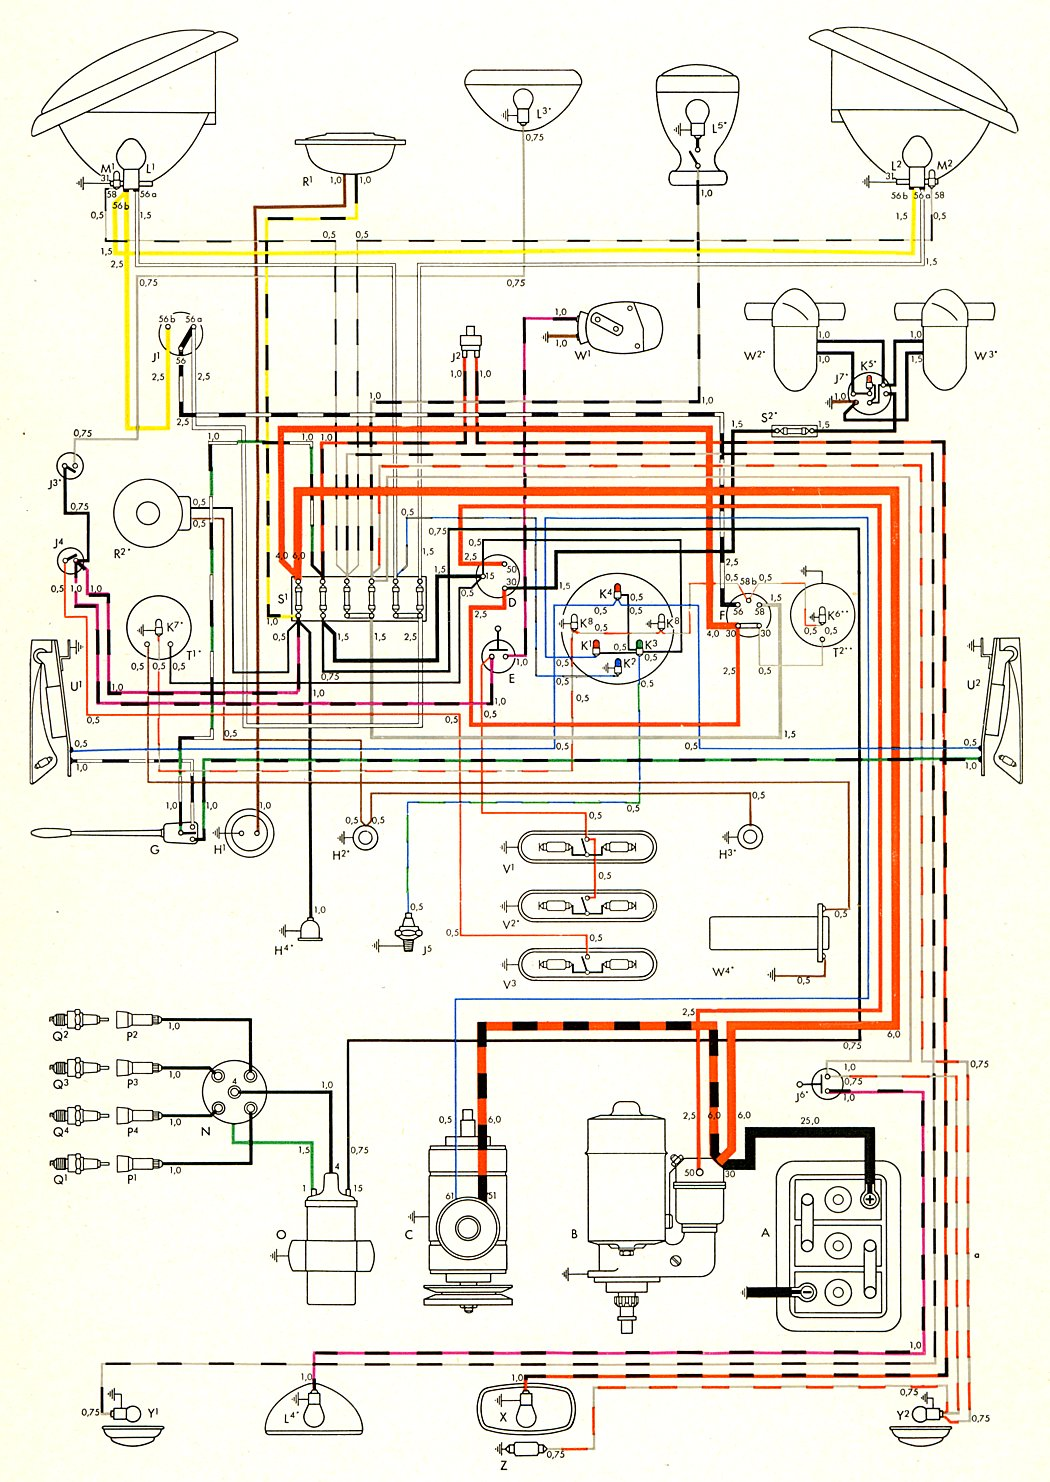 bus_nov57 1957 bus wiring diagram thegoldenbug com 72 vw bus wiring diagram at alyssarenee.co